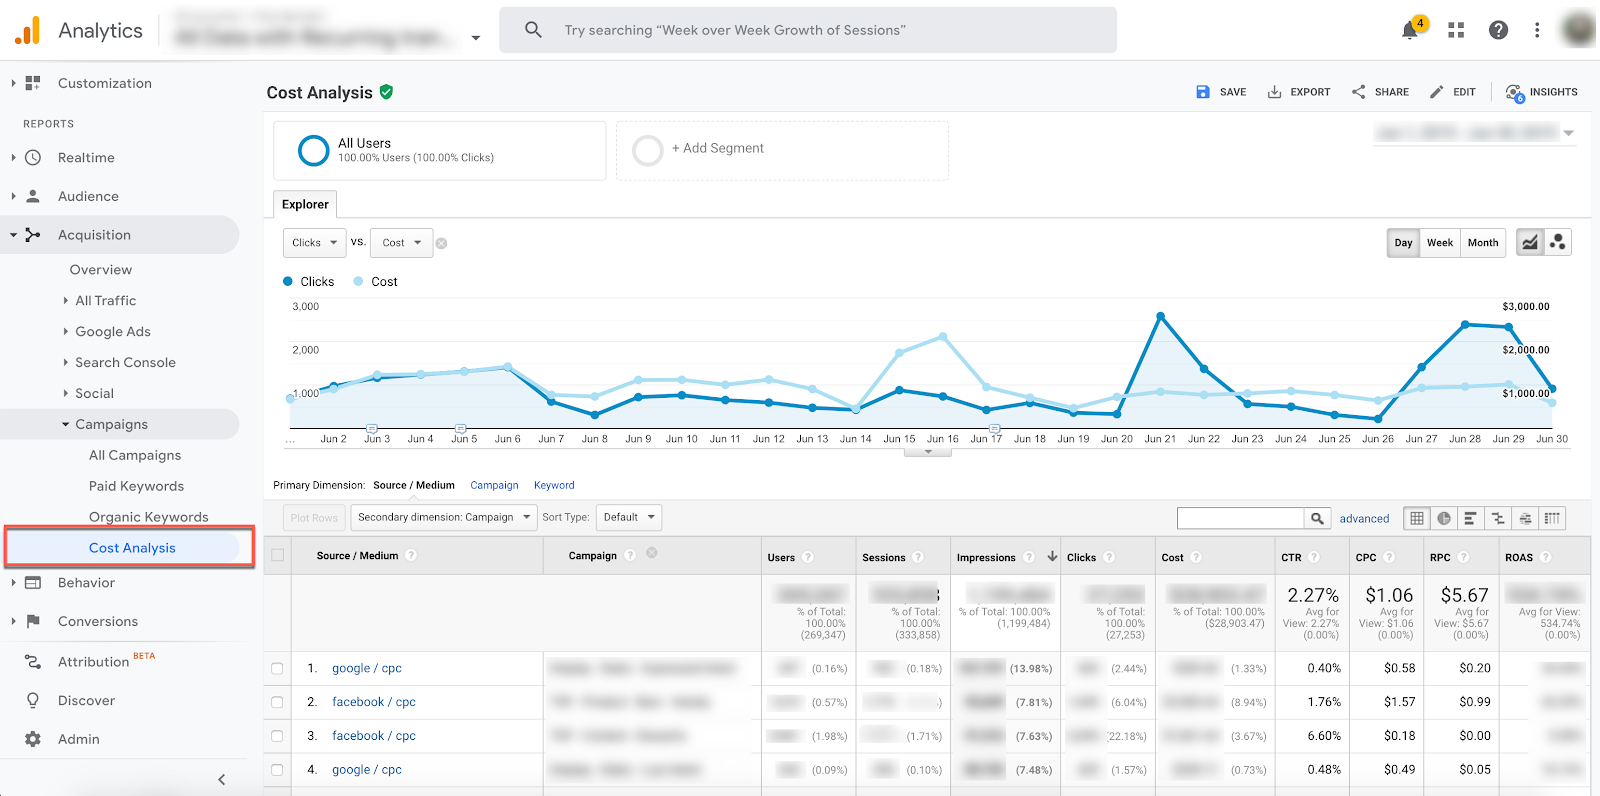 A glimpse at Analytics